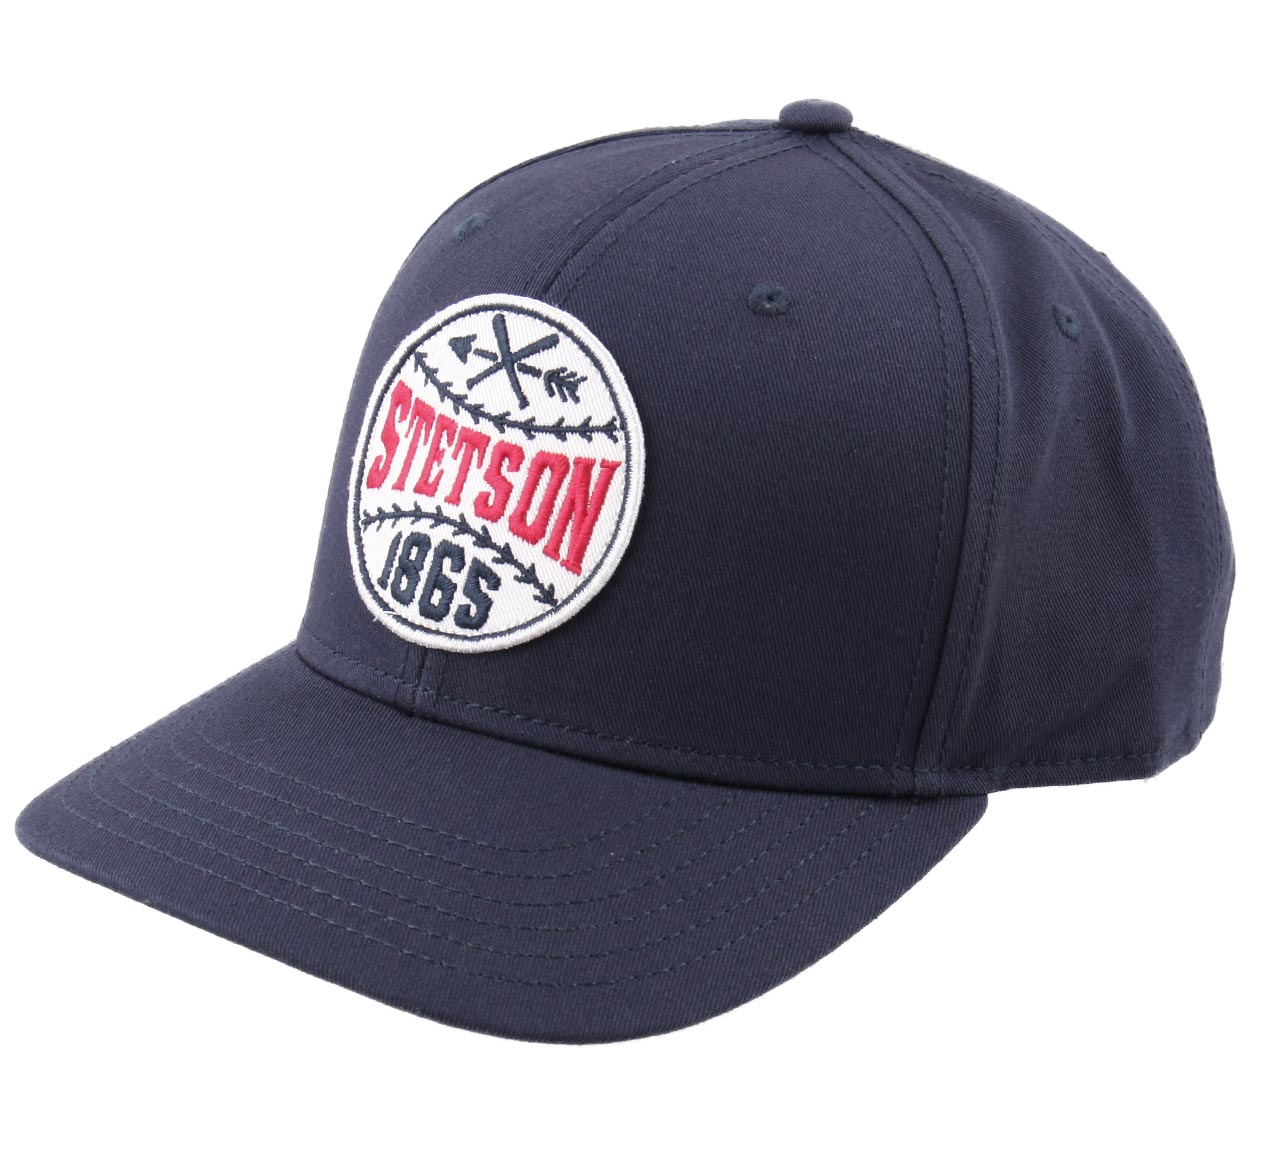 lowest price 76de4 9492f Emblem Baseball - Caps Stetson